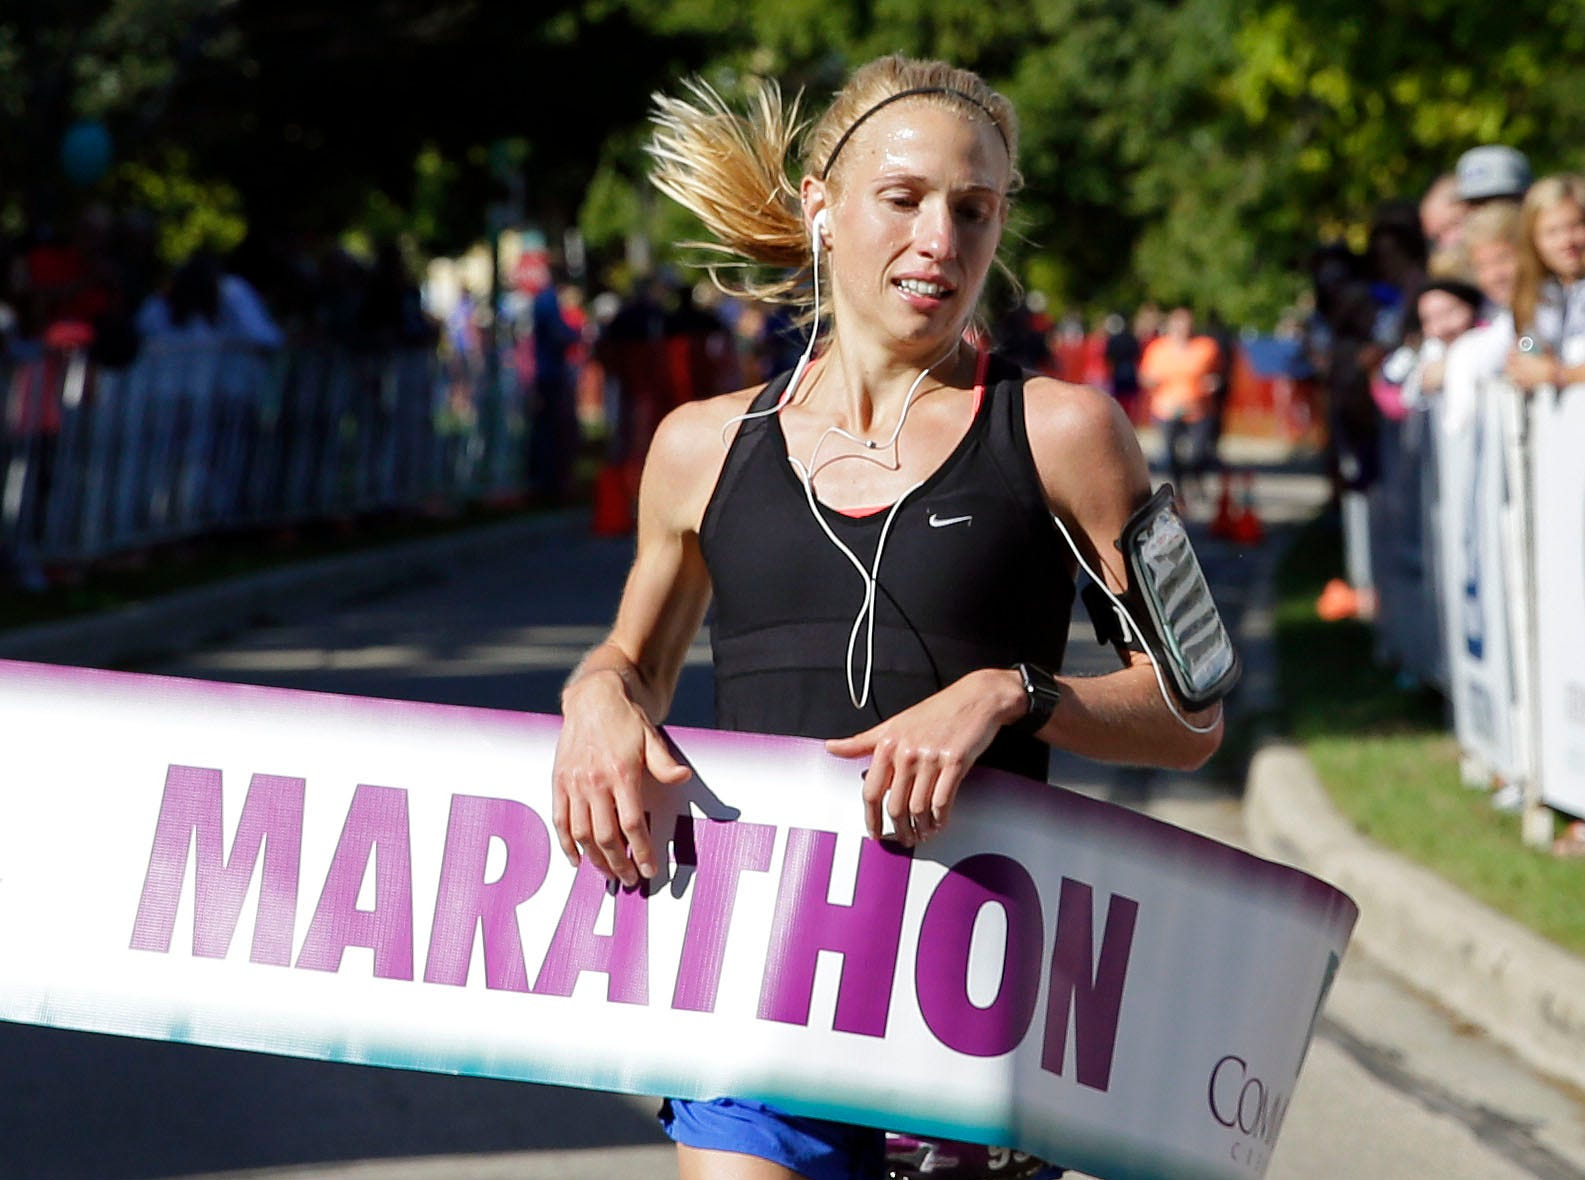 Kathy Derks is the female winner as the Community First Fox Cities Marathon takes place Sept. 23, 2018, across the Fox Cities.